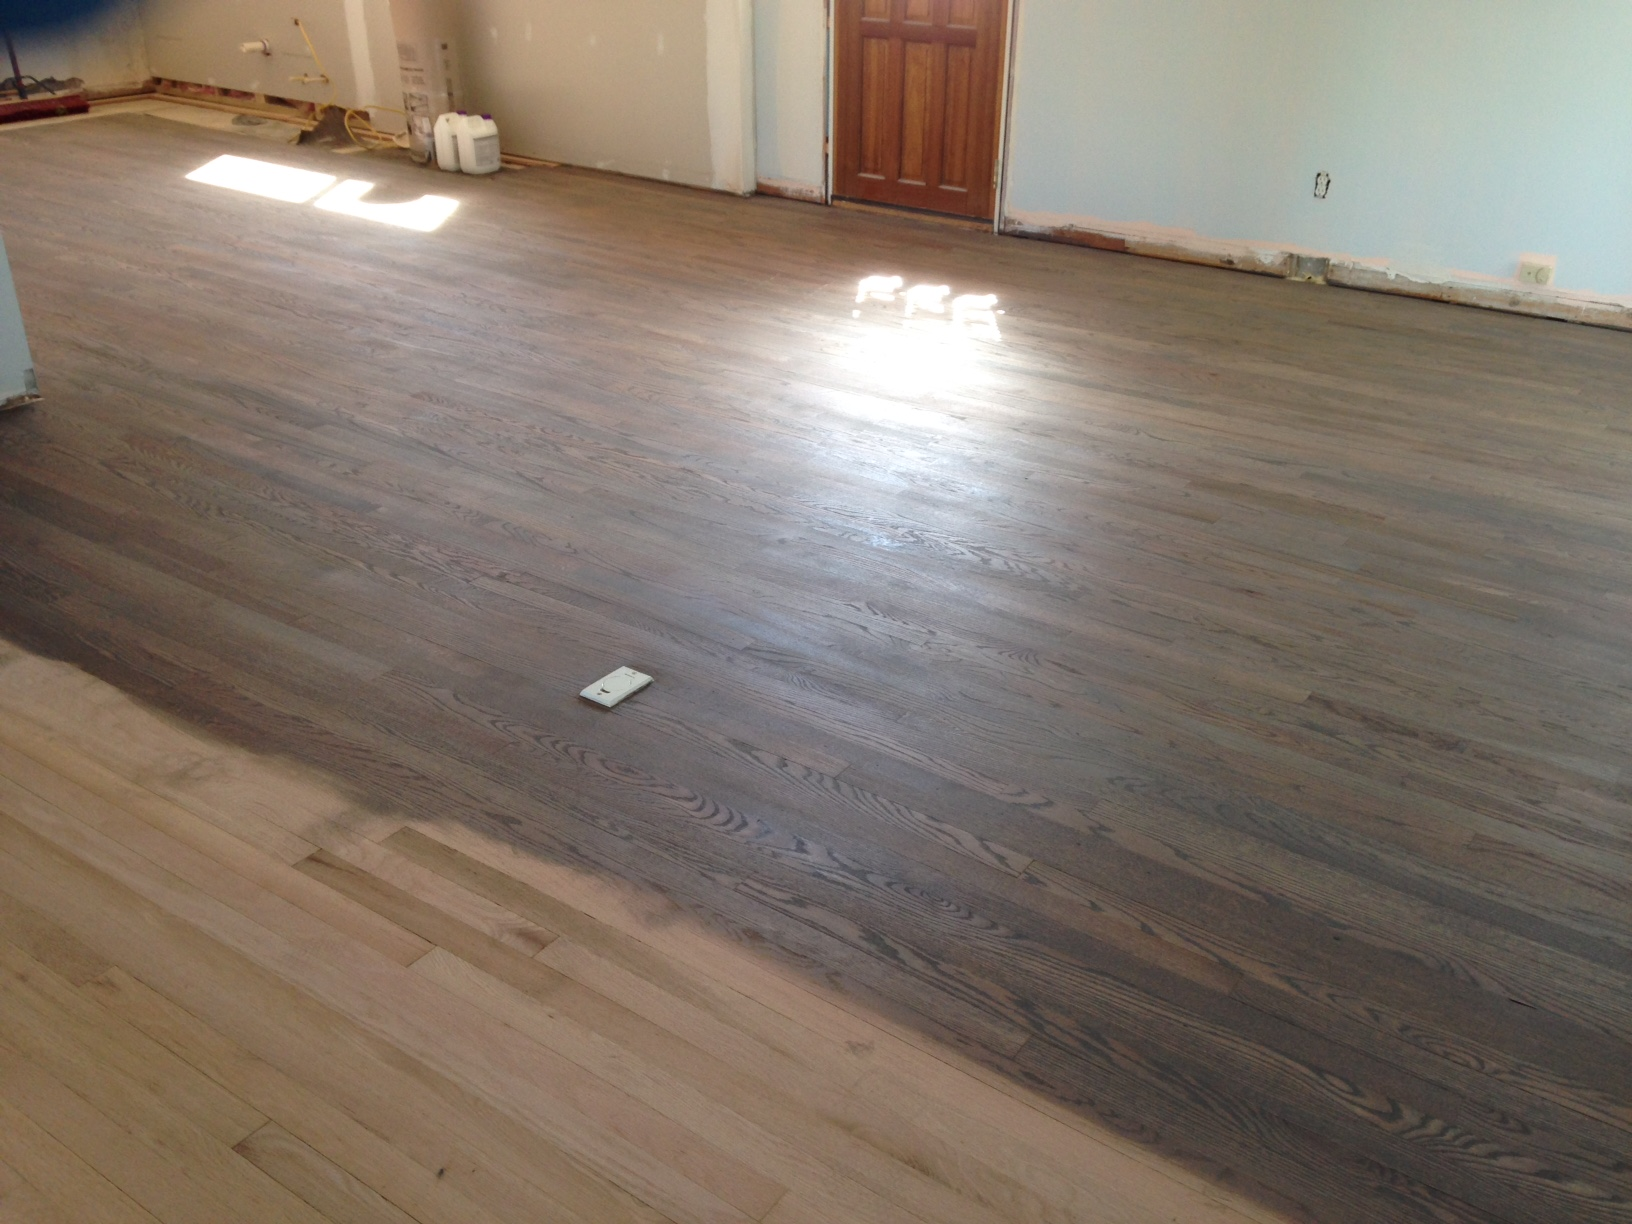 Wood flooring refinish and repair in jacksonville beach fl for Staining hardwood floors